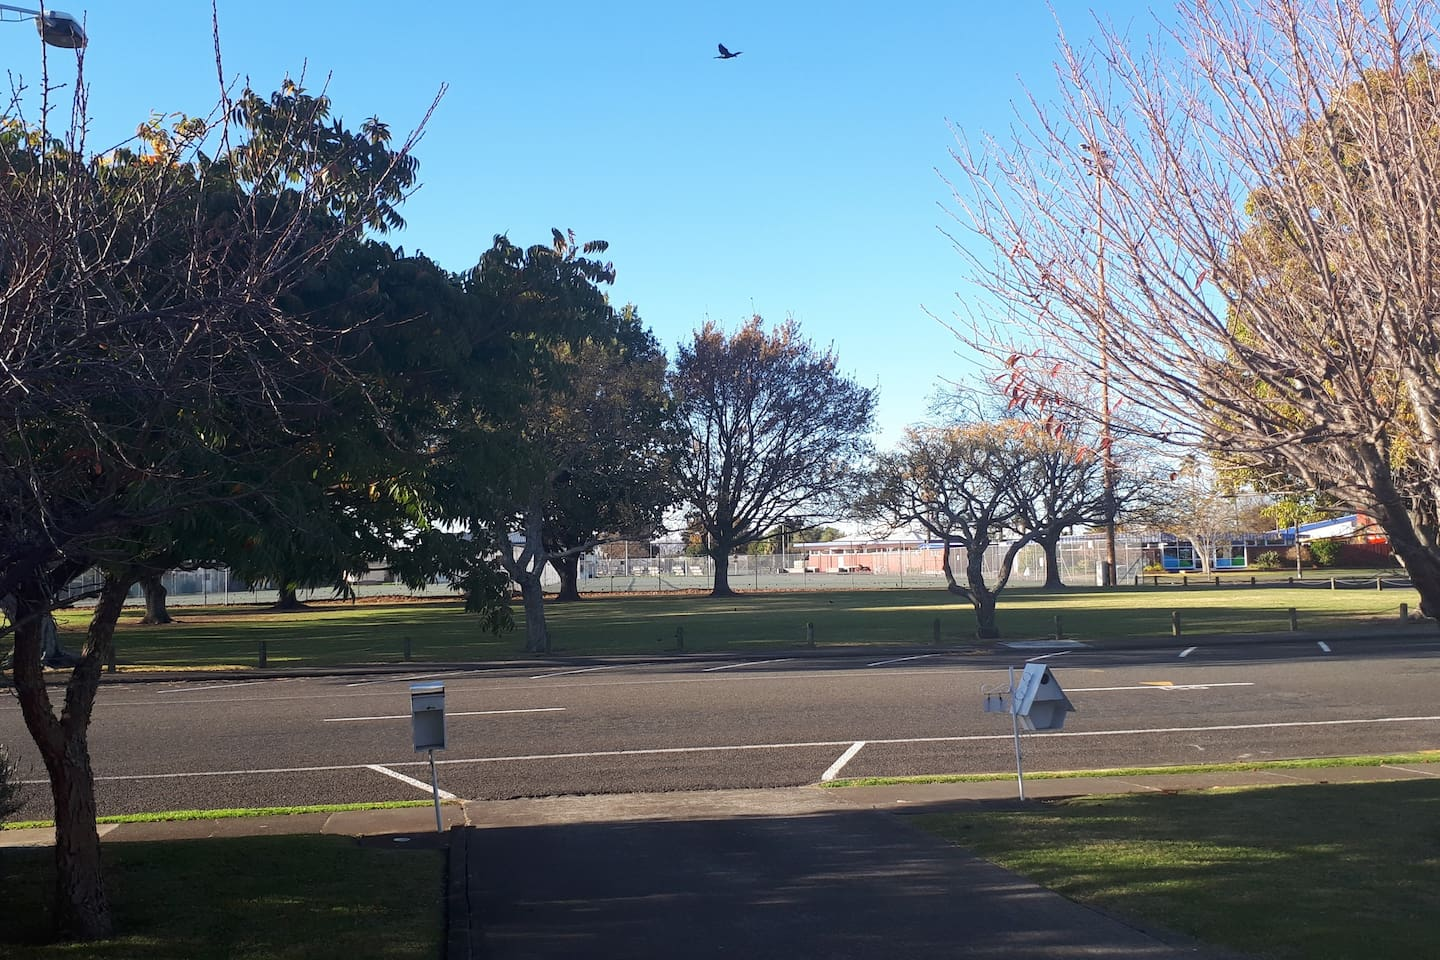 Park across the road includes netball courts, Aquatic Centre, Omni gym, large open space and trees for climbing.